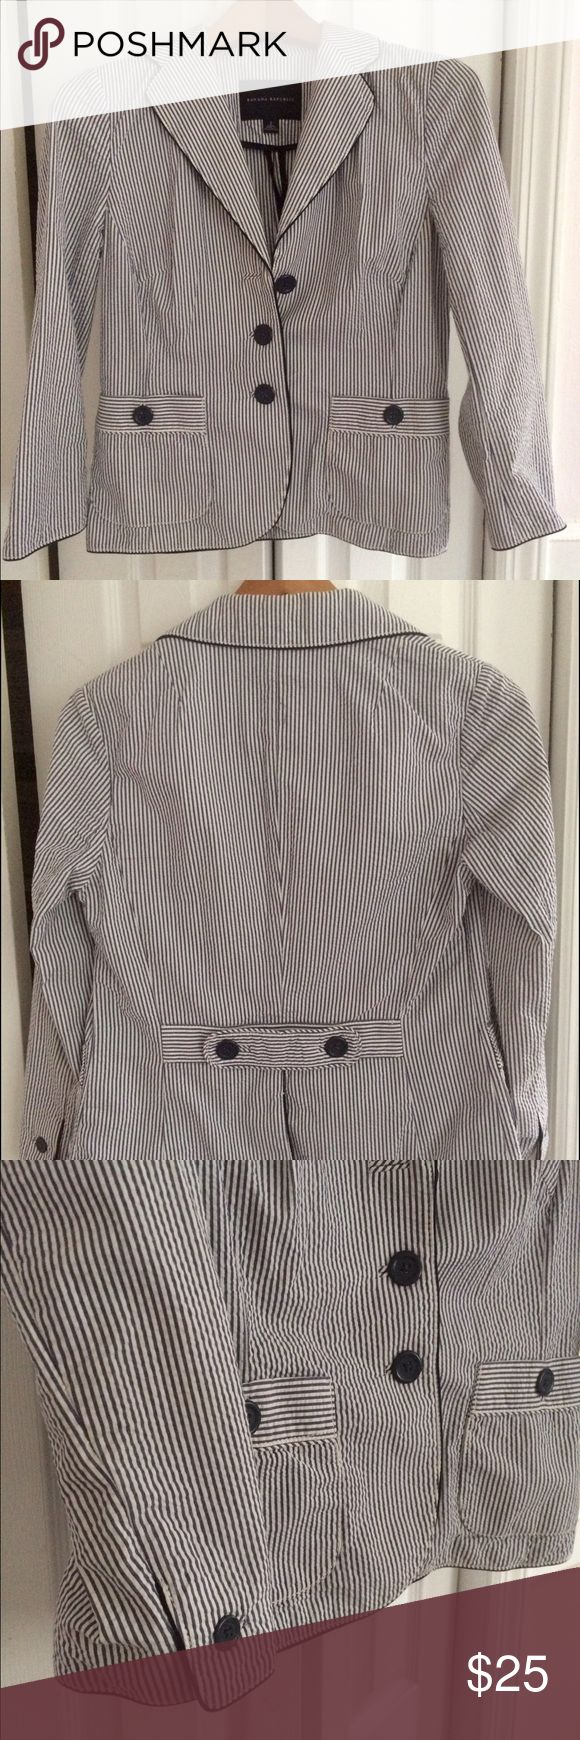 Banana Republic Blazer 🎉 Banana Republic Blazer size 2. Navy and white seersucker jacket has navy piping around the edges. Looks great with jeans. 👖 Banana Republic Jackets & Coats Blazers